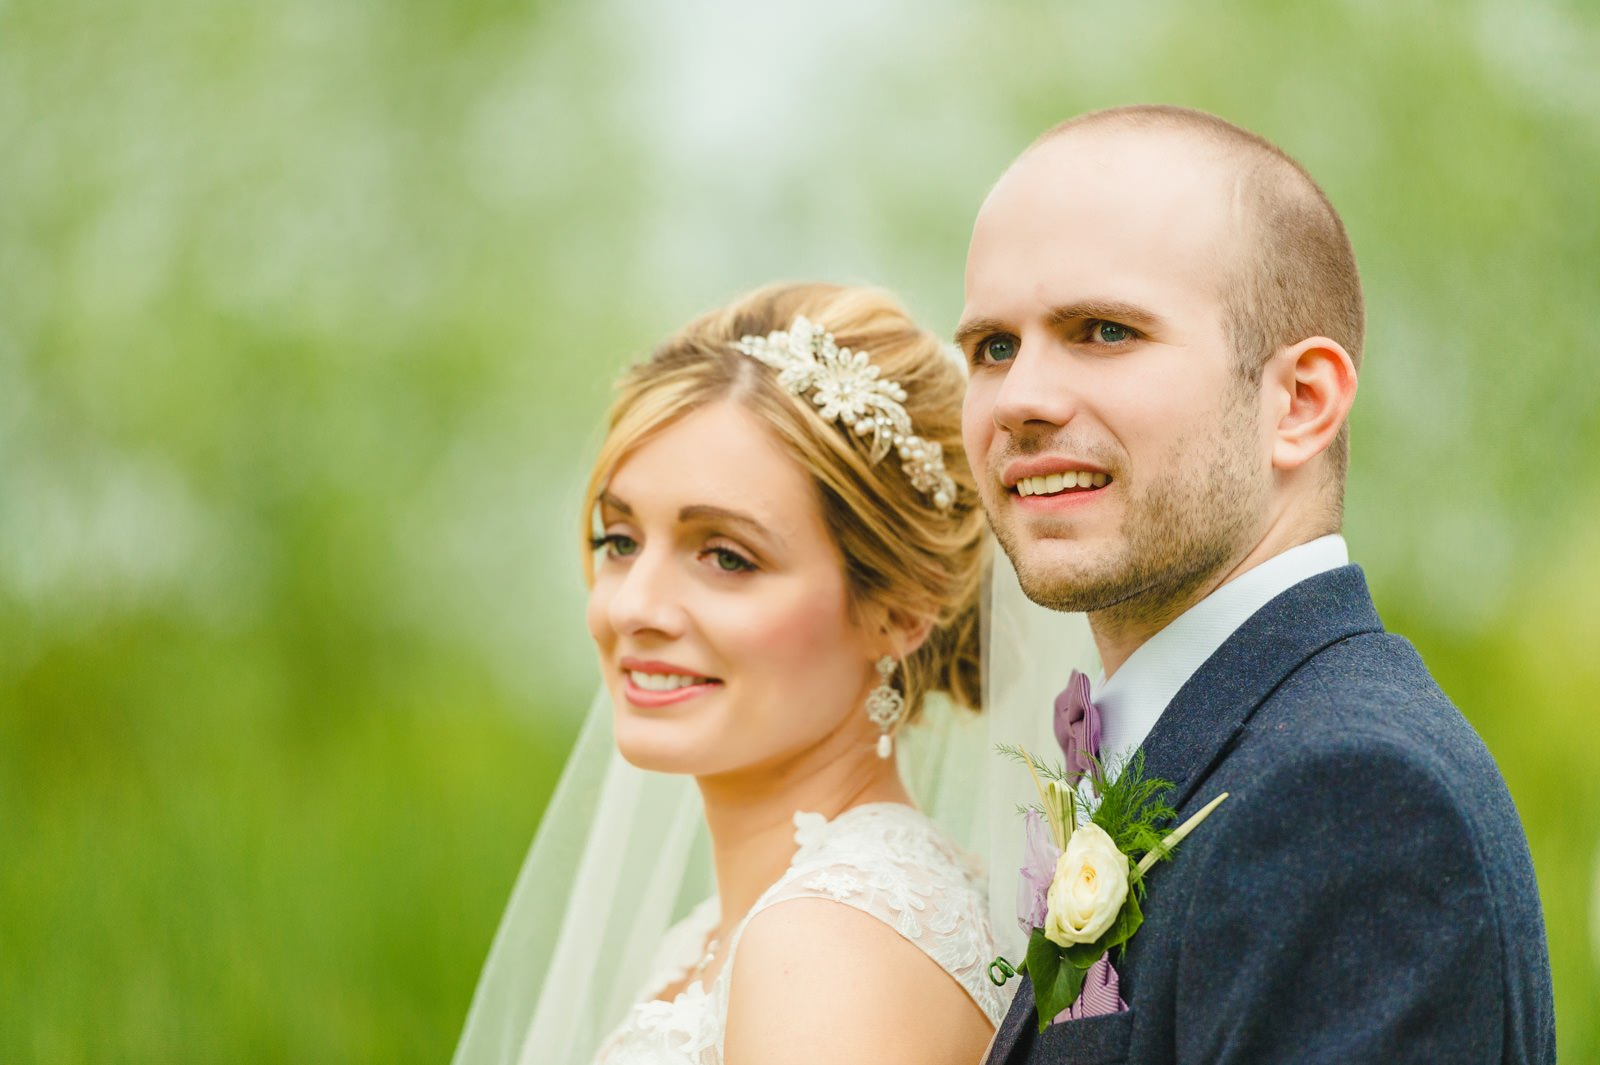 millers of netley wedding 77 - Millers Of Netley wedding, Dorrington, Shrewsbury | Emma + Ben